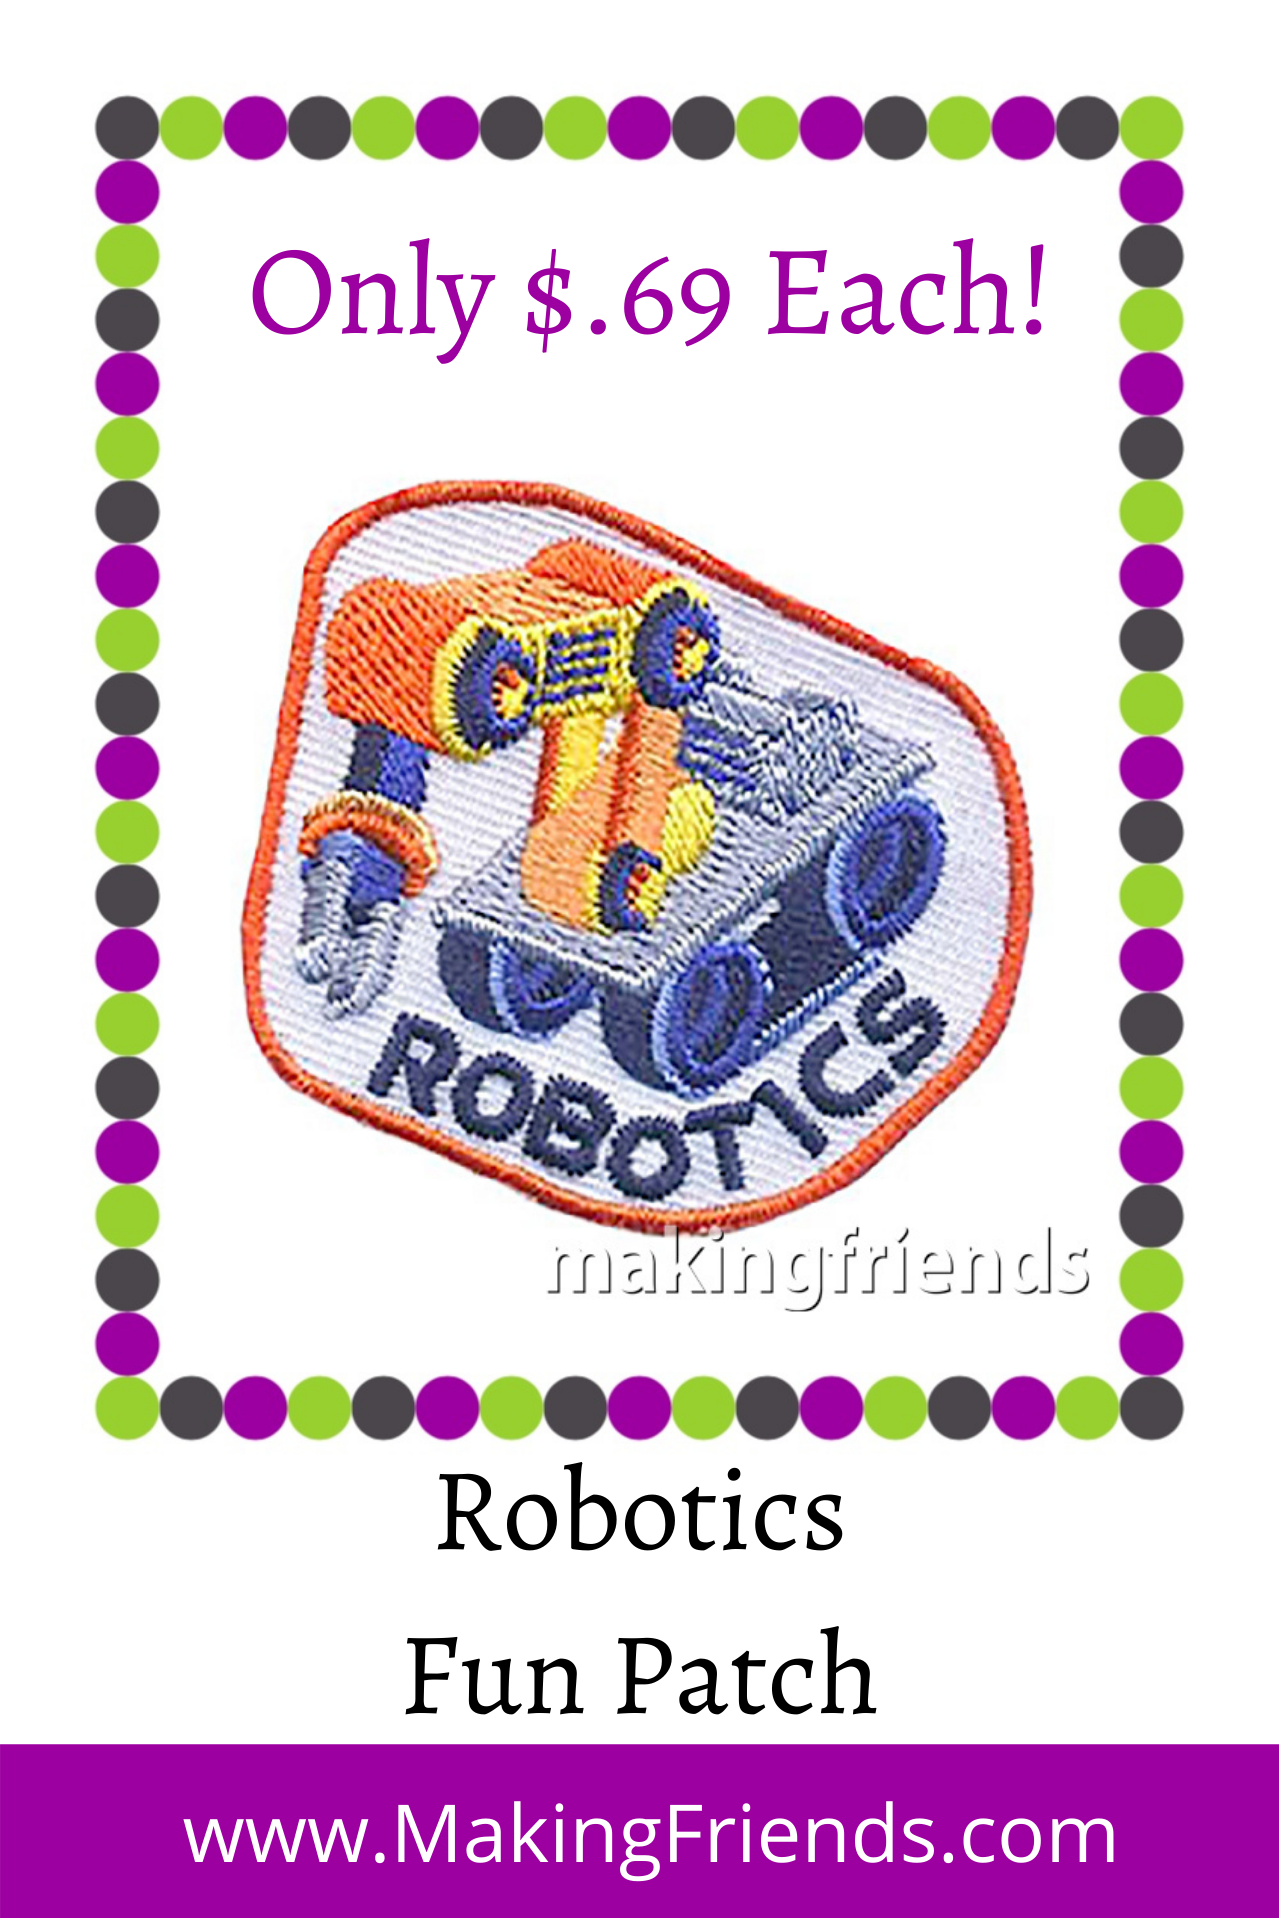 The Robotics Patch from MakingFriends®.com is for any scout that is working on a robotics project for fun or as part of a team. If your local high school or college has a Robotics Club, ask them about a visit with your troop or service unit. #makingfriends #robotics #roboticsfun #roboticspatch #funpatch via @gsleader411